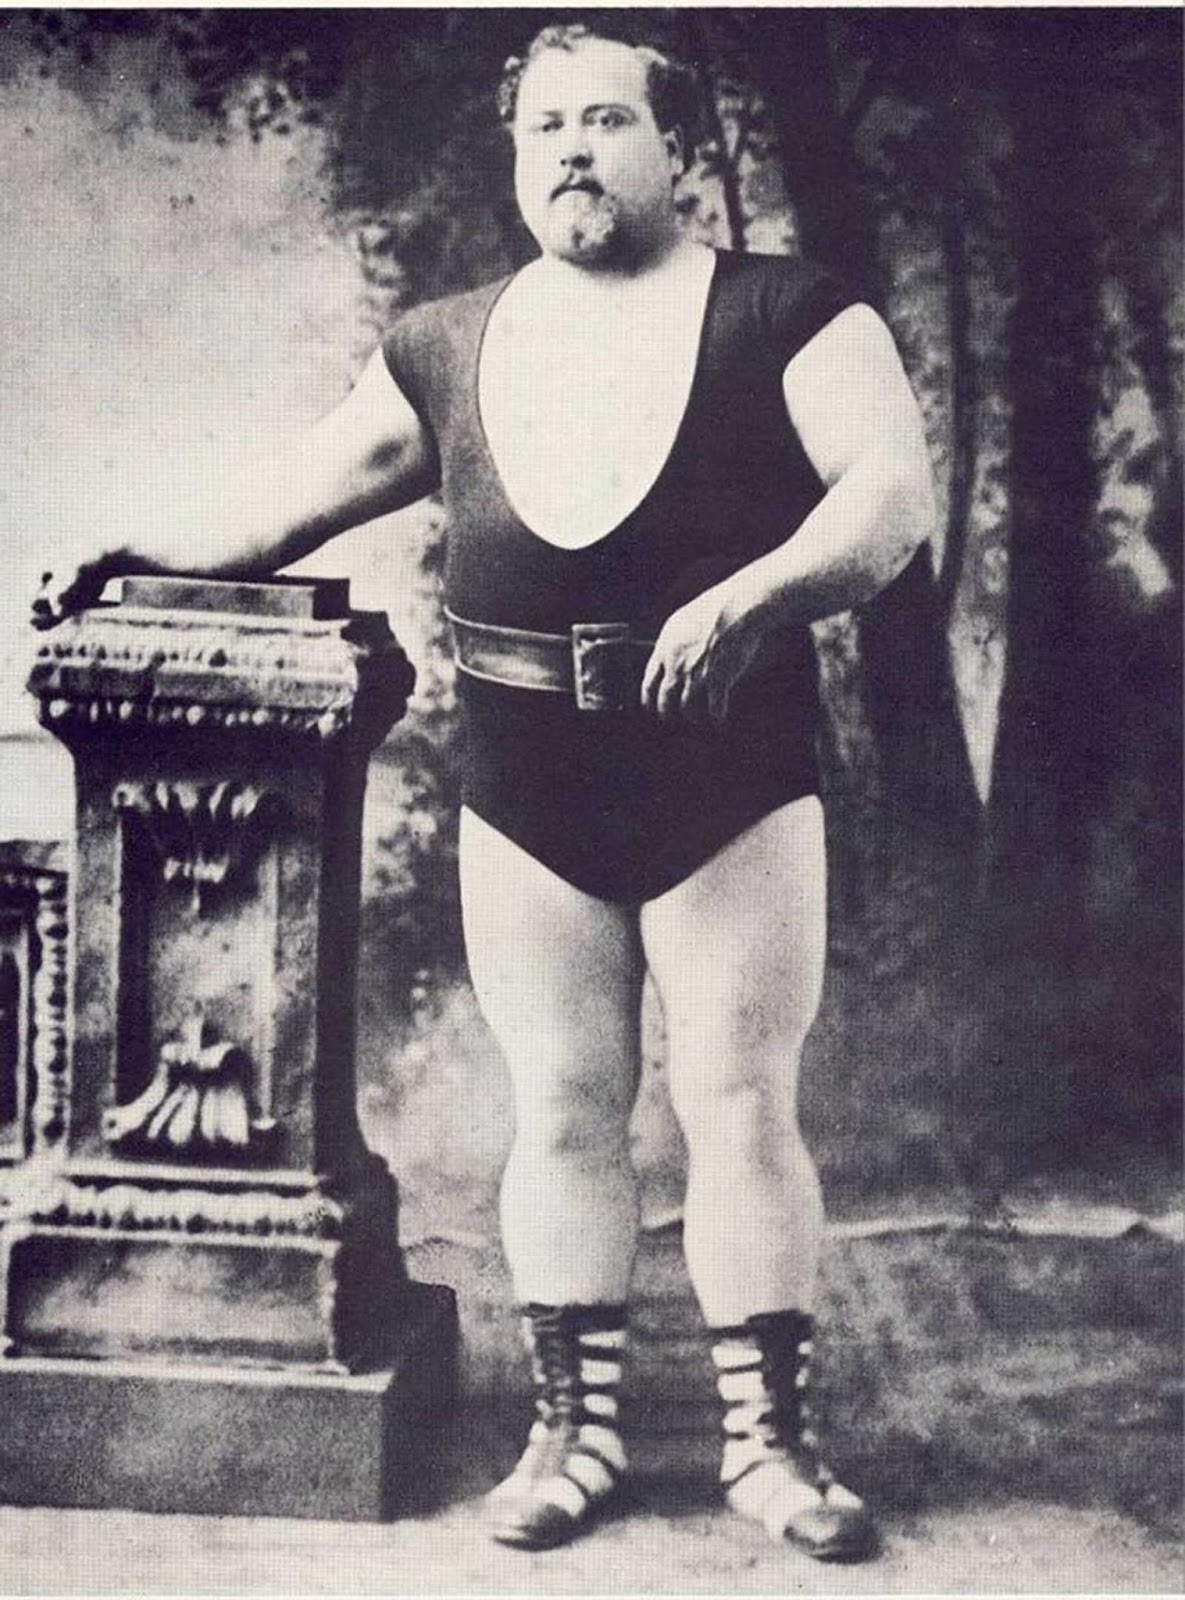 Louis Cyr, the French Canadian strongman.